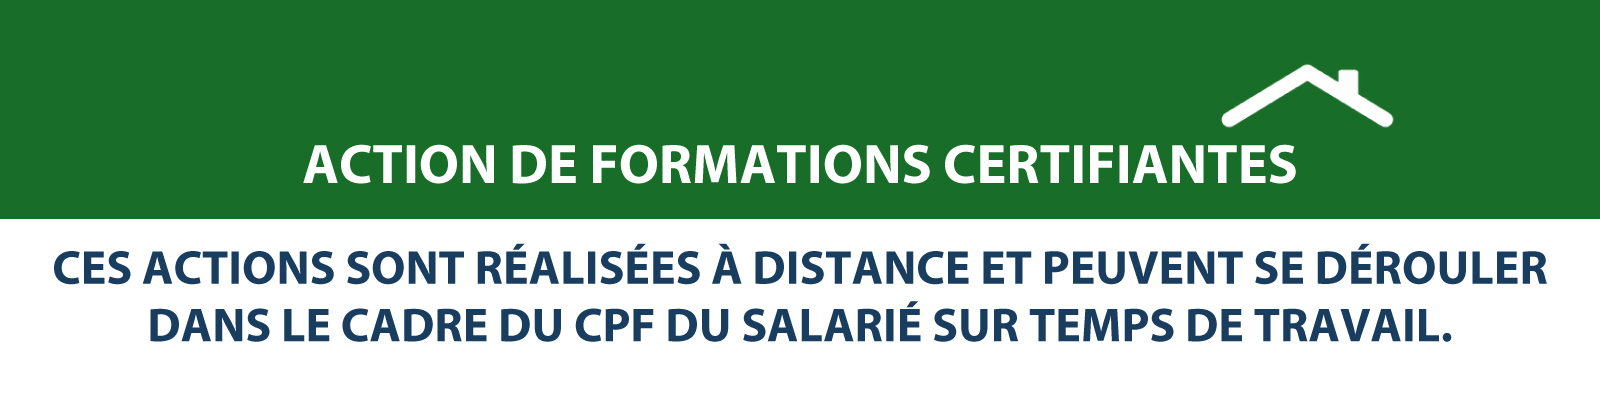 actions-formations-certifiantes